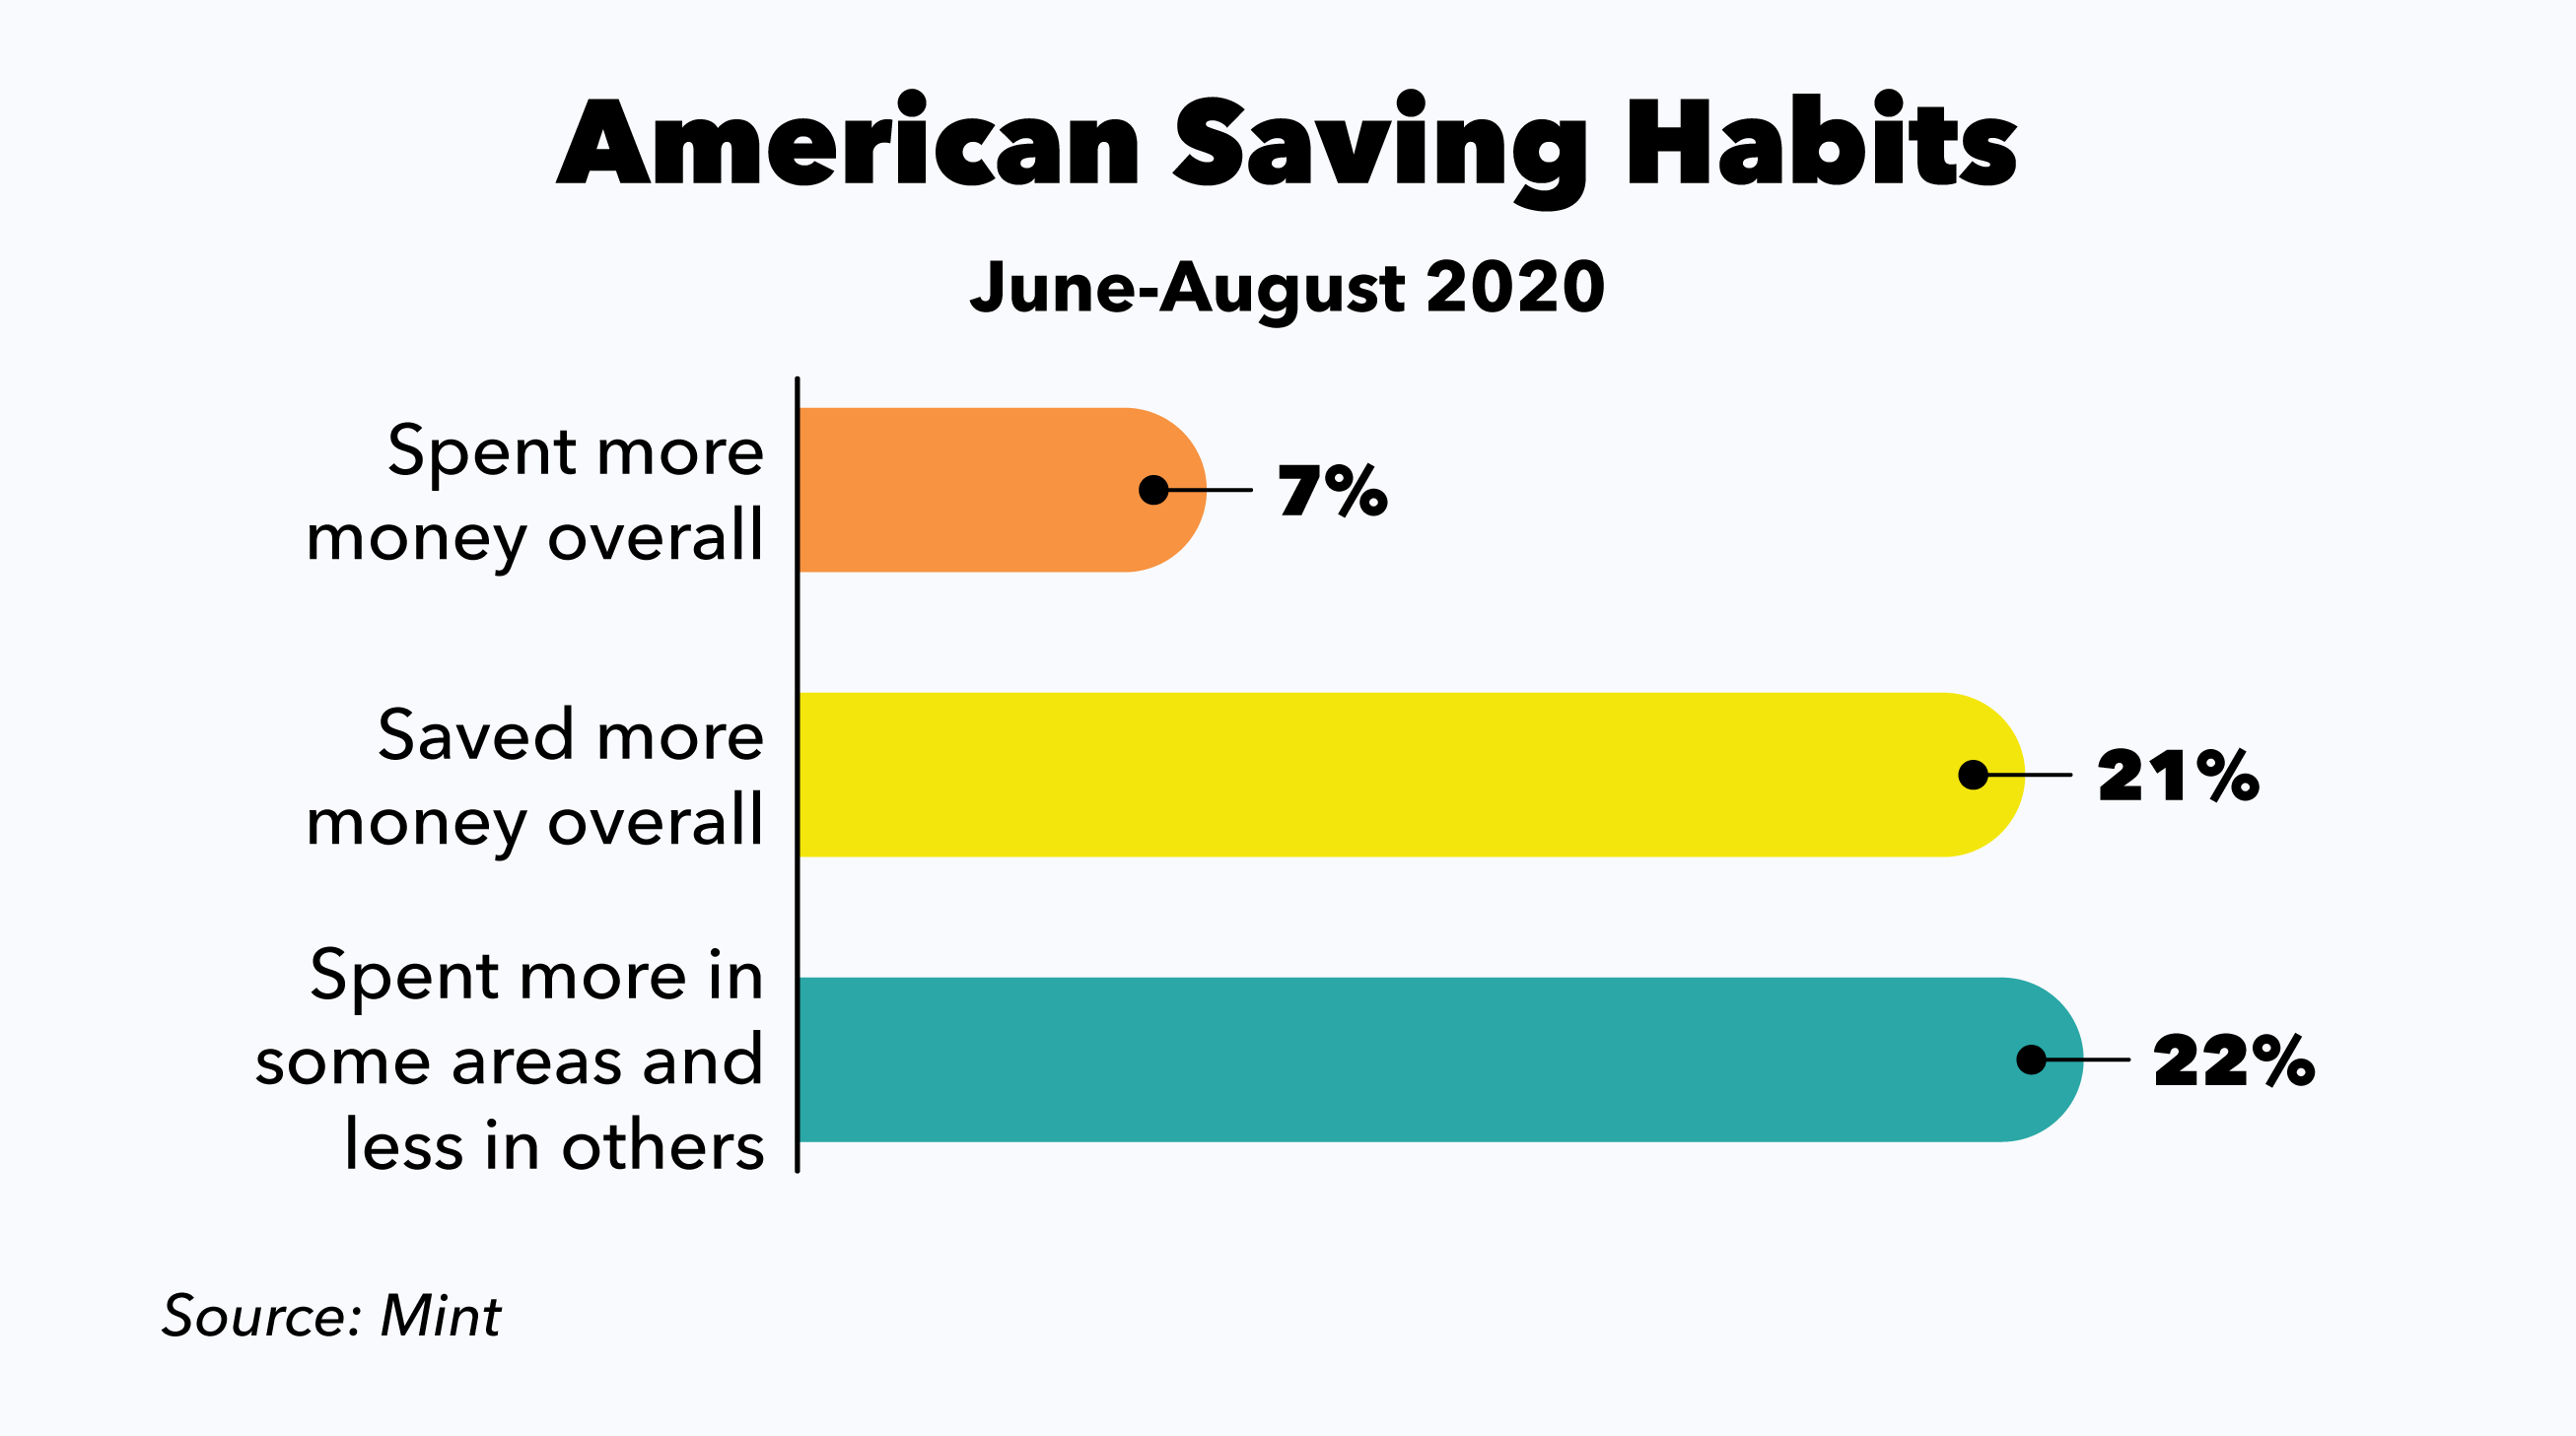 American Saving Habits Bar Chart